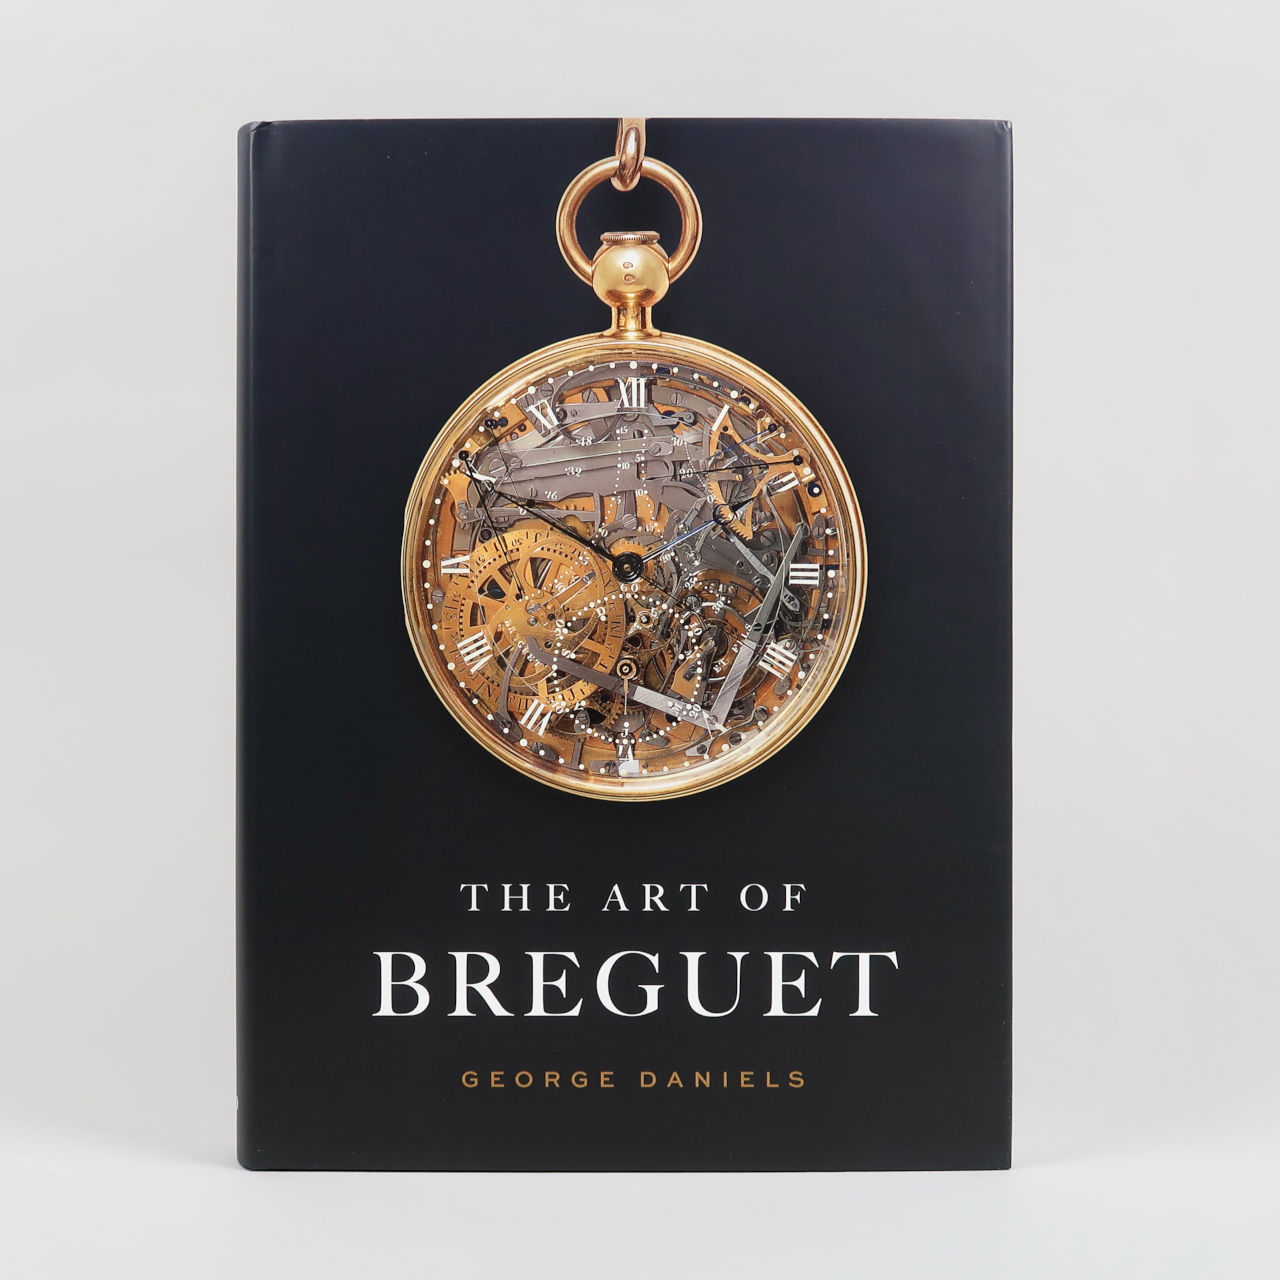 The Art of Breguet by George Daniels